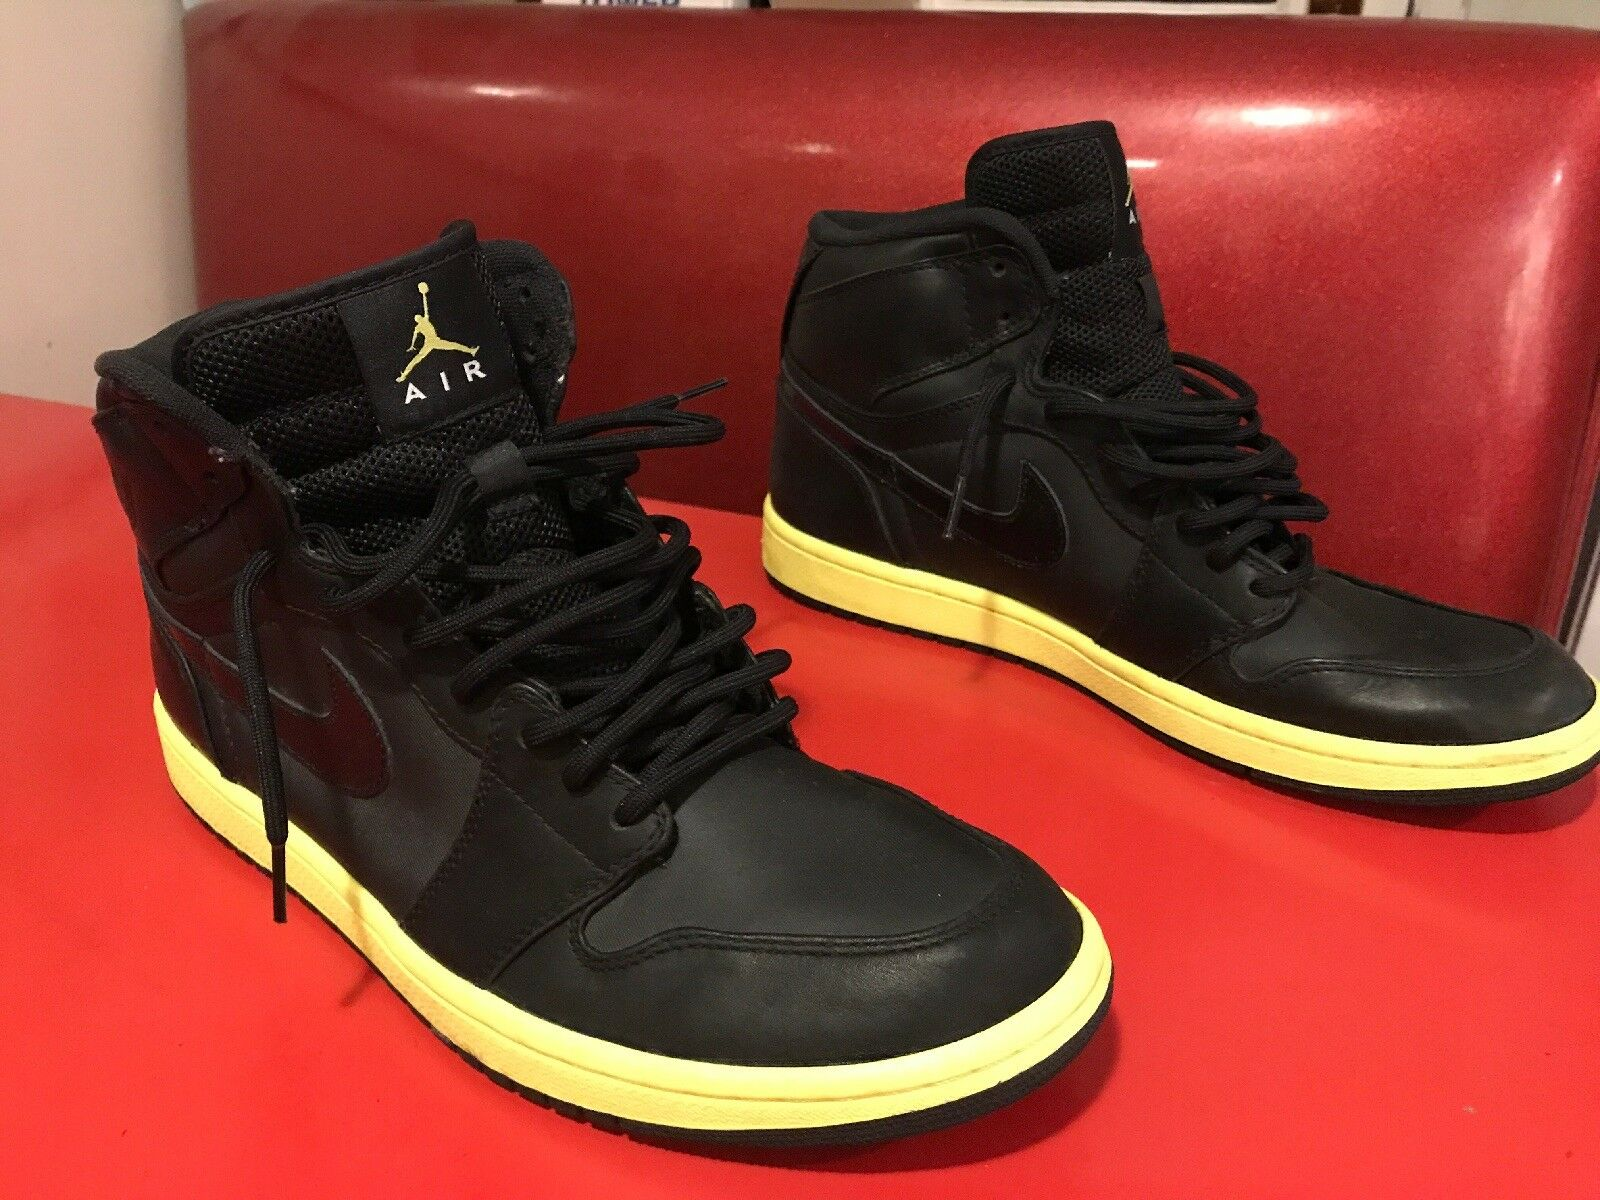 Men's Size 11.5 NiKE NiKE NiKE Jordan 1 Retro High Black Voltage Yellow shoes 342132-001 c02fa7